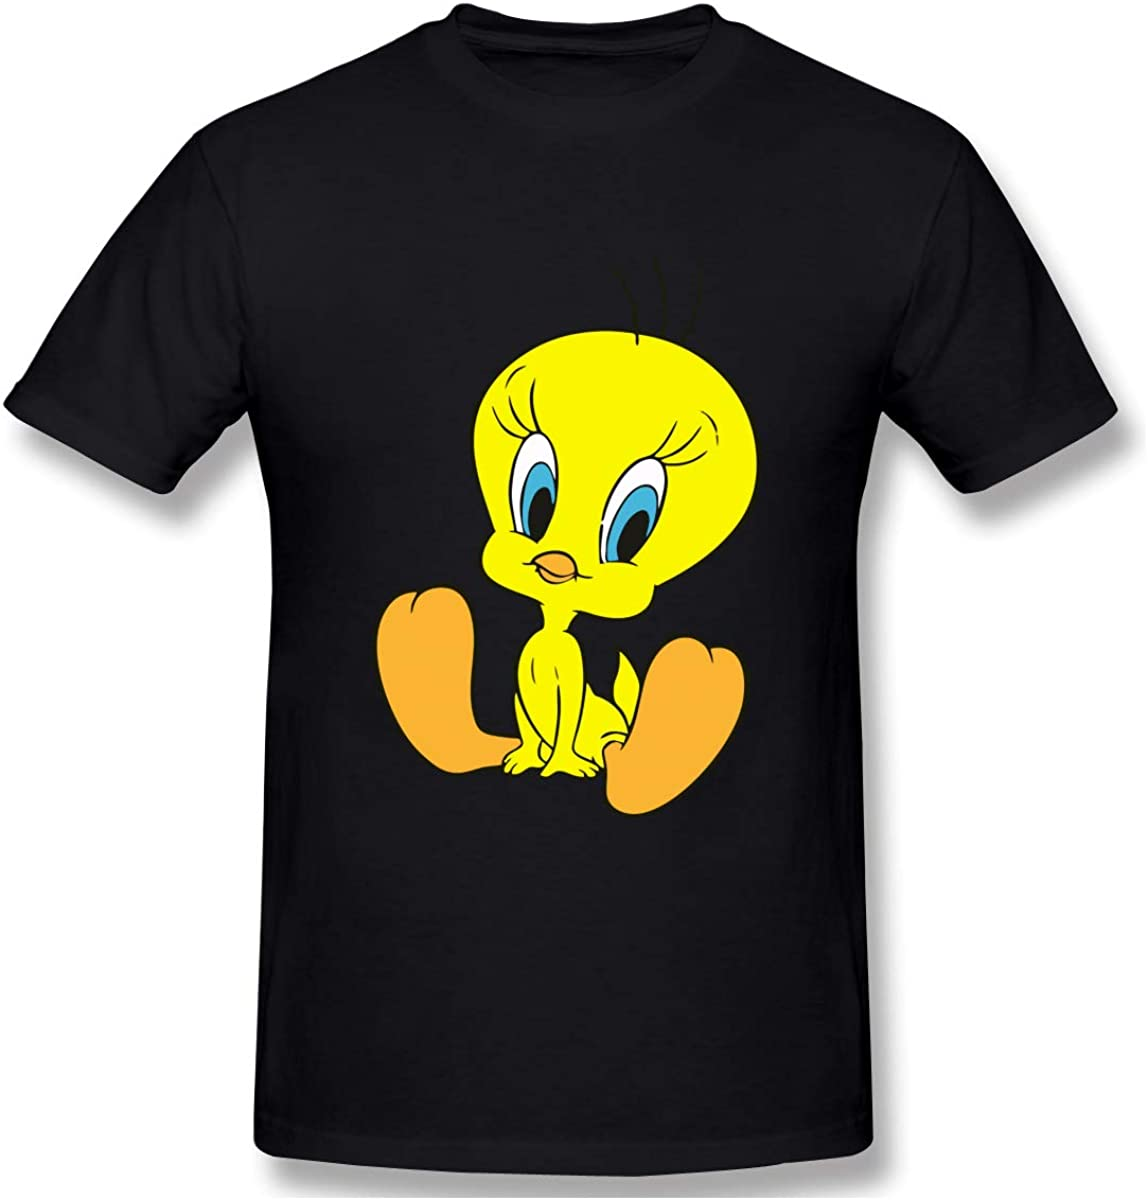 This is A Comfortable Tweety Bird Men's Fashion Short-Sleeved T-Shirt